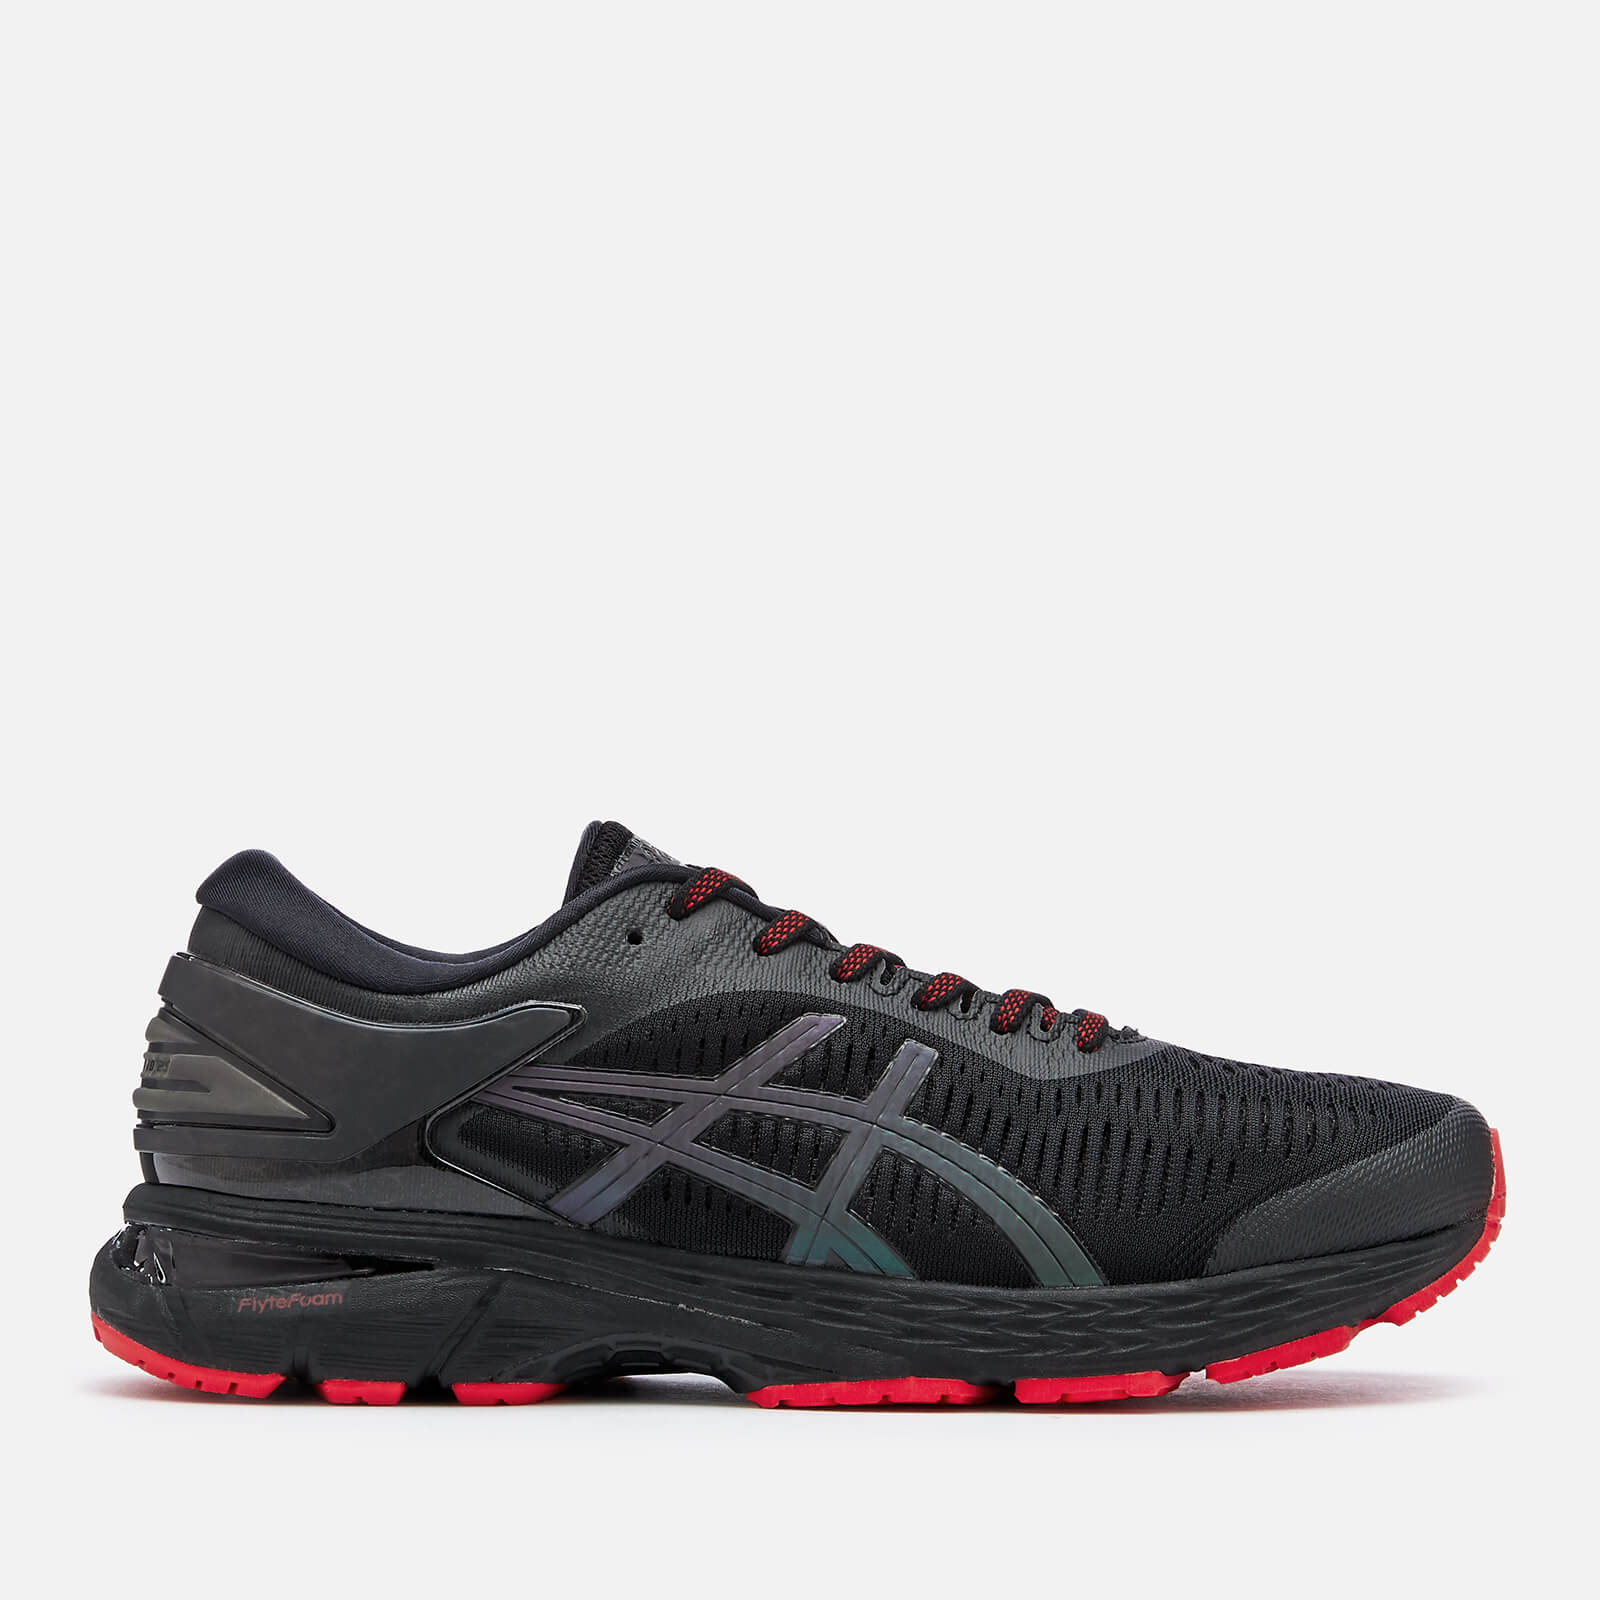 e819ac2b815 Asics Running Men s Gel-Kayano 25 Lite Show Trainers - Black - Free UK  Delivery over £50